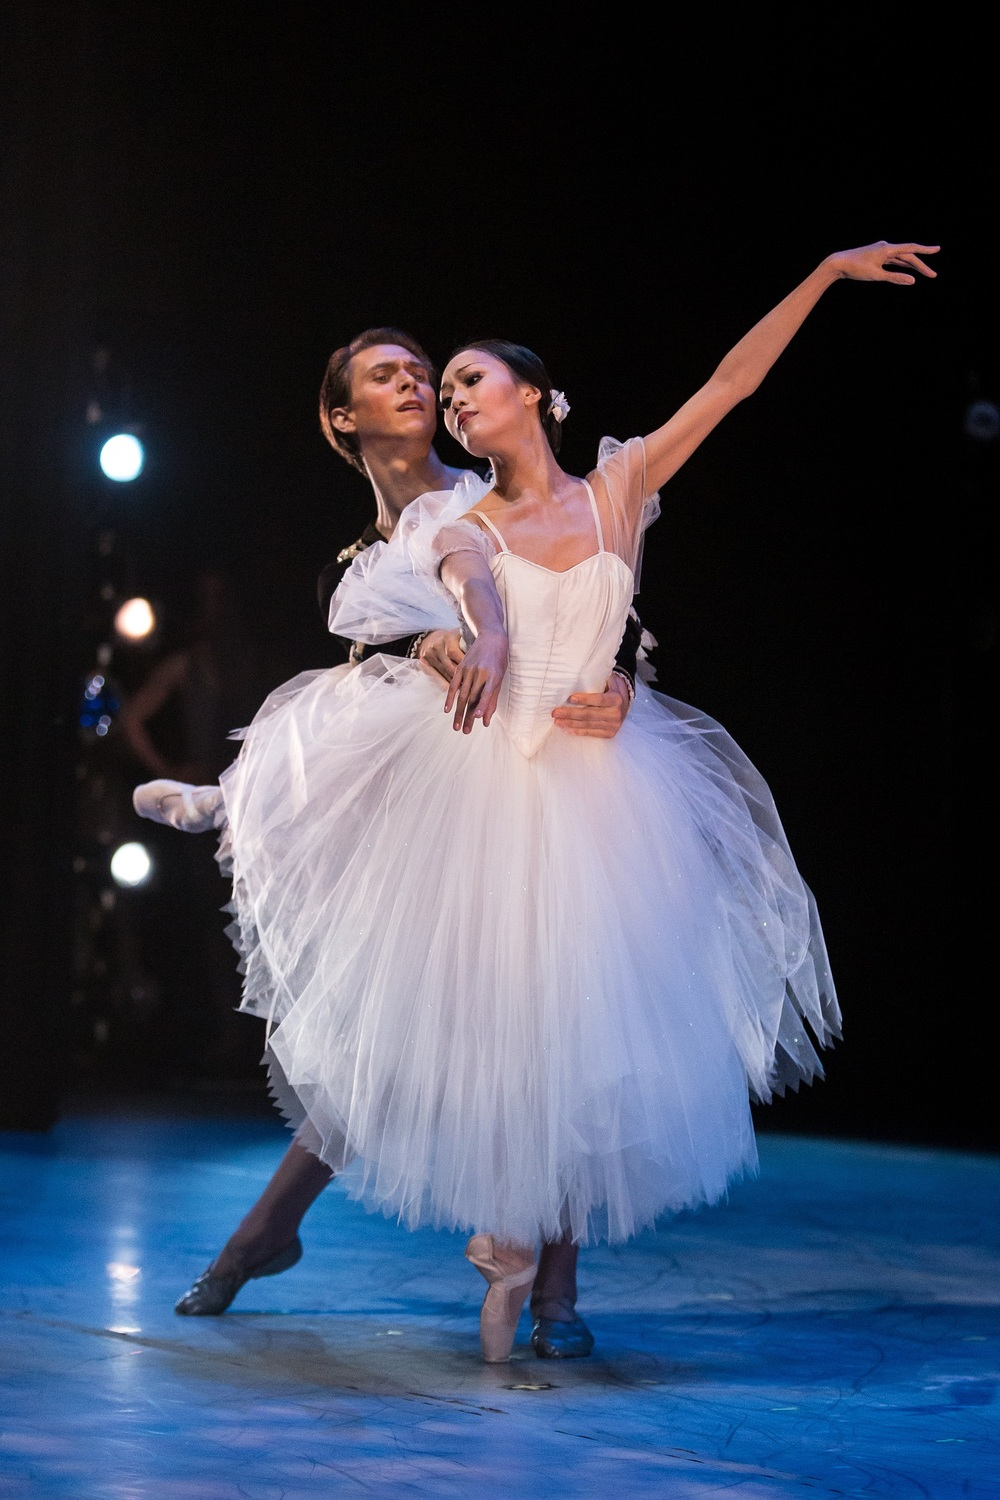 Ommi Pipit-Suksun and Brett Bauer of Silicon Valley Ballet, photo Alex Reneff-Olson